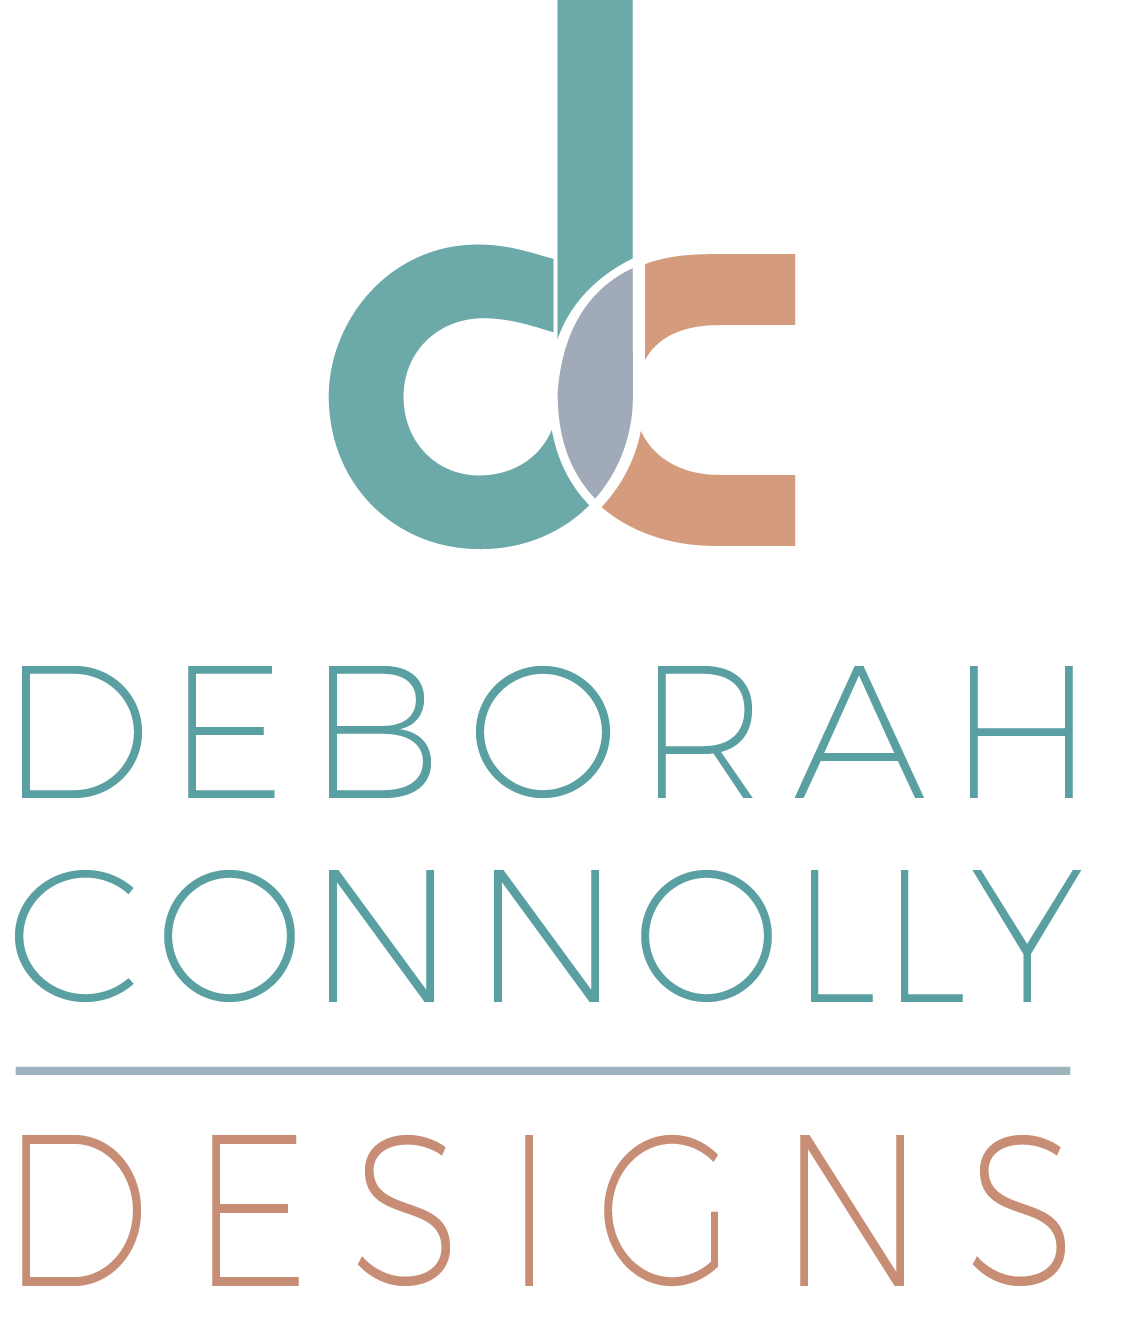 Deborah Connolly Designs